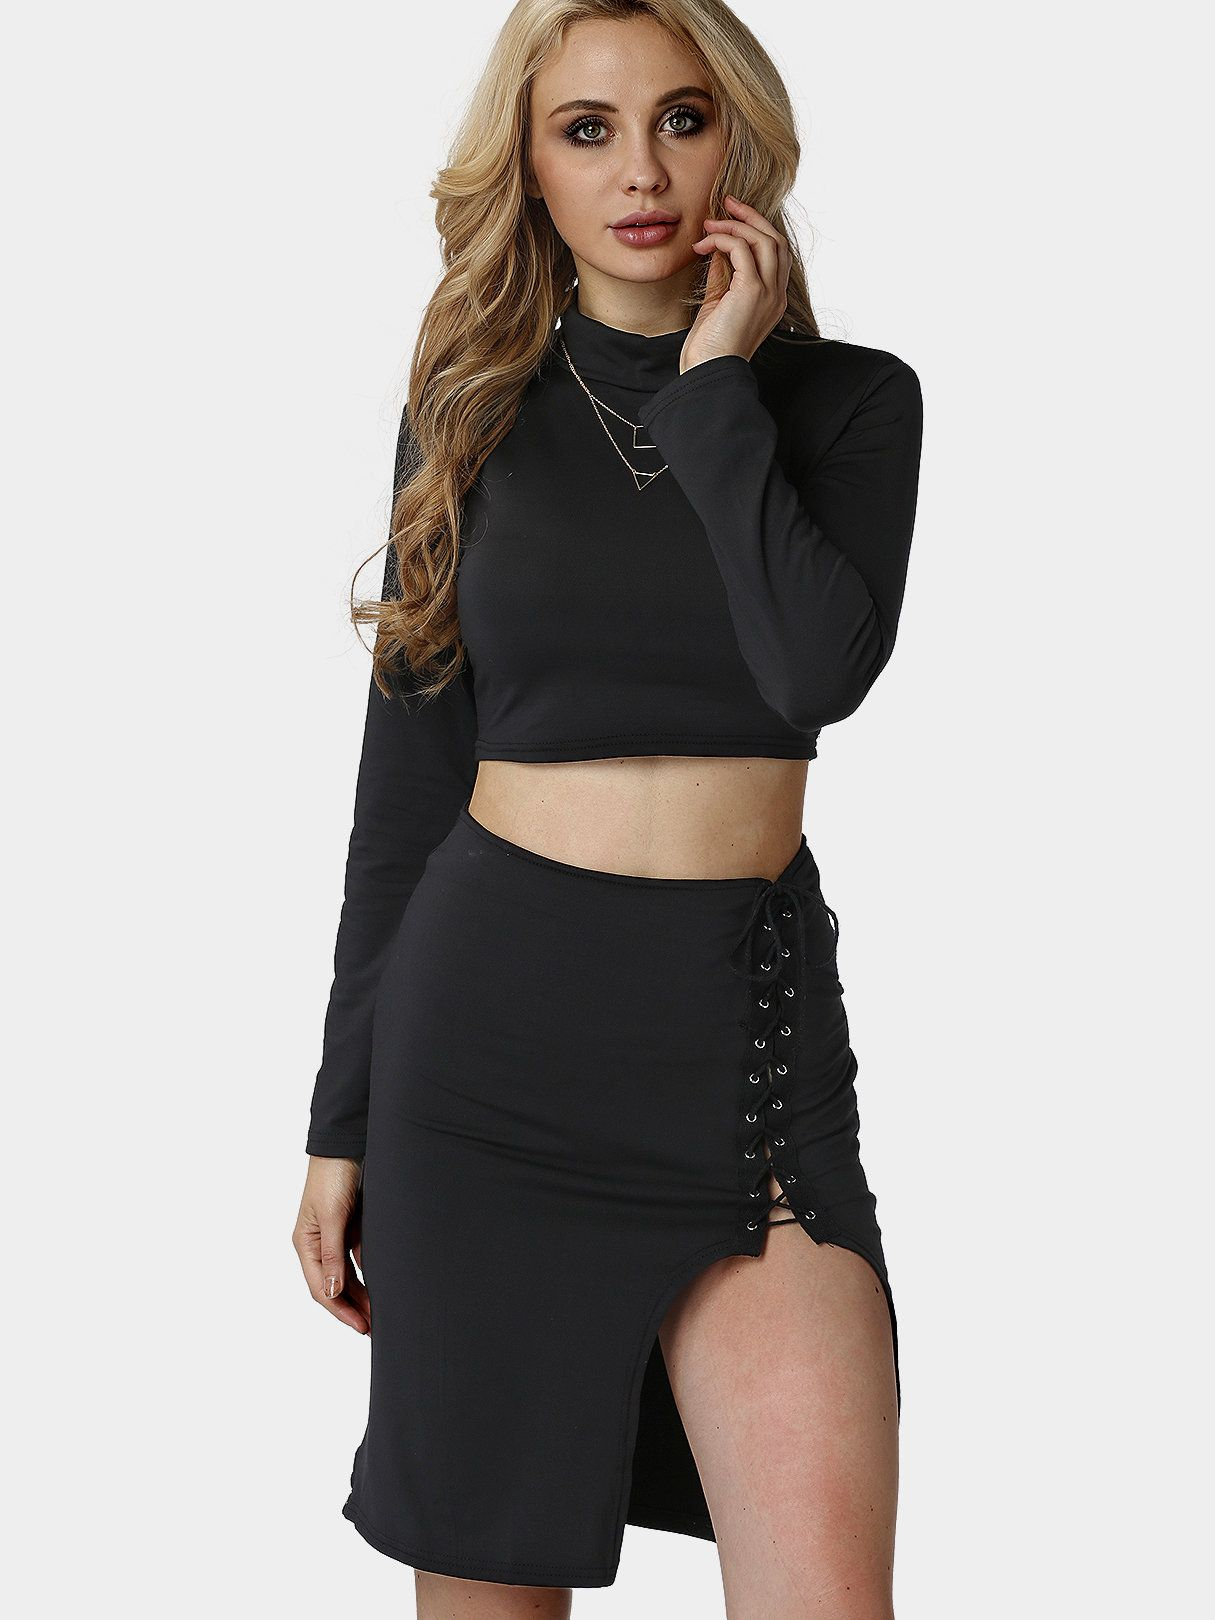 186f1c81f62f3 Black Long Sleeves Top and Split Lace-up Skirt Co-ord - US 7.95 in ...